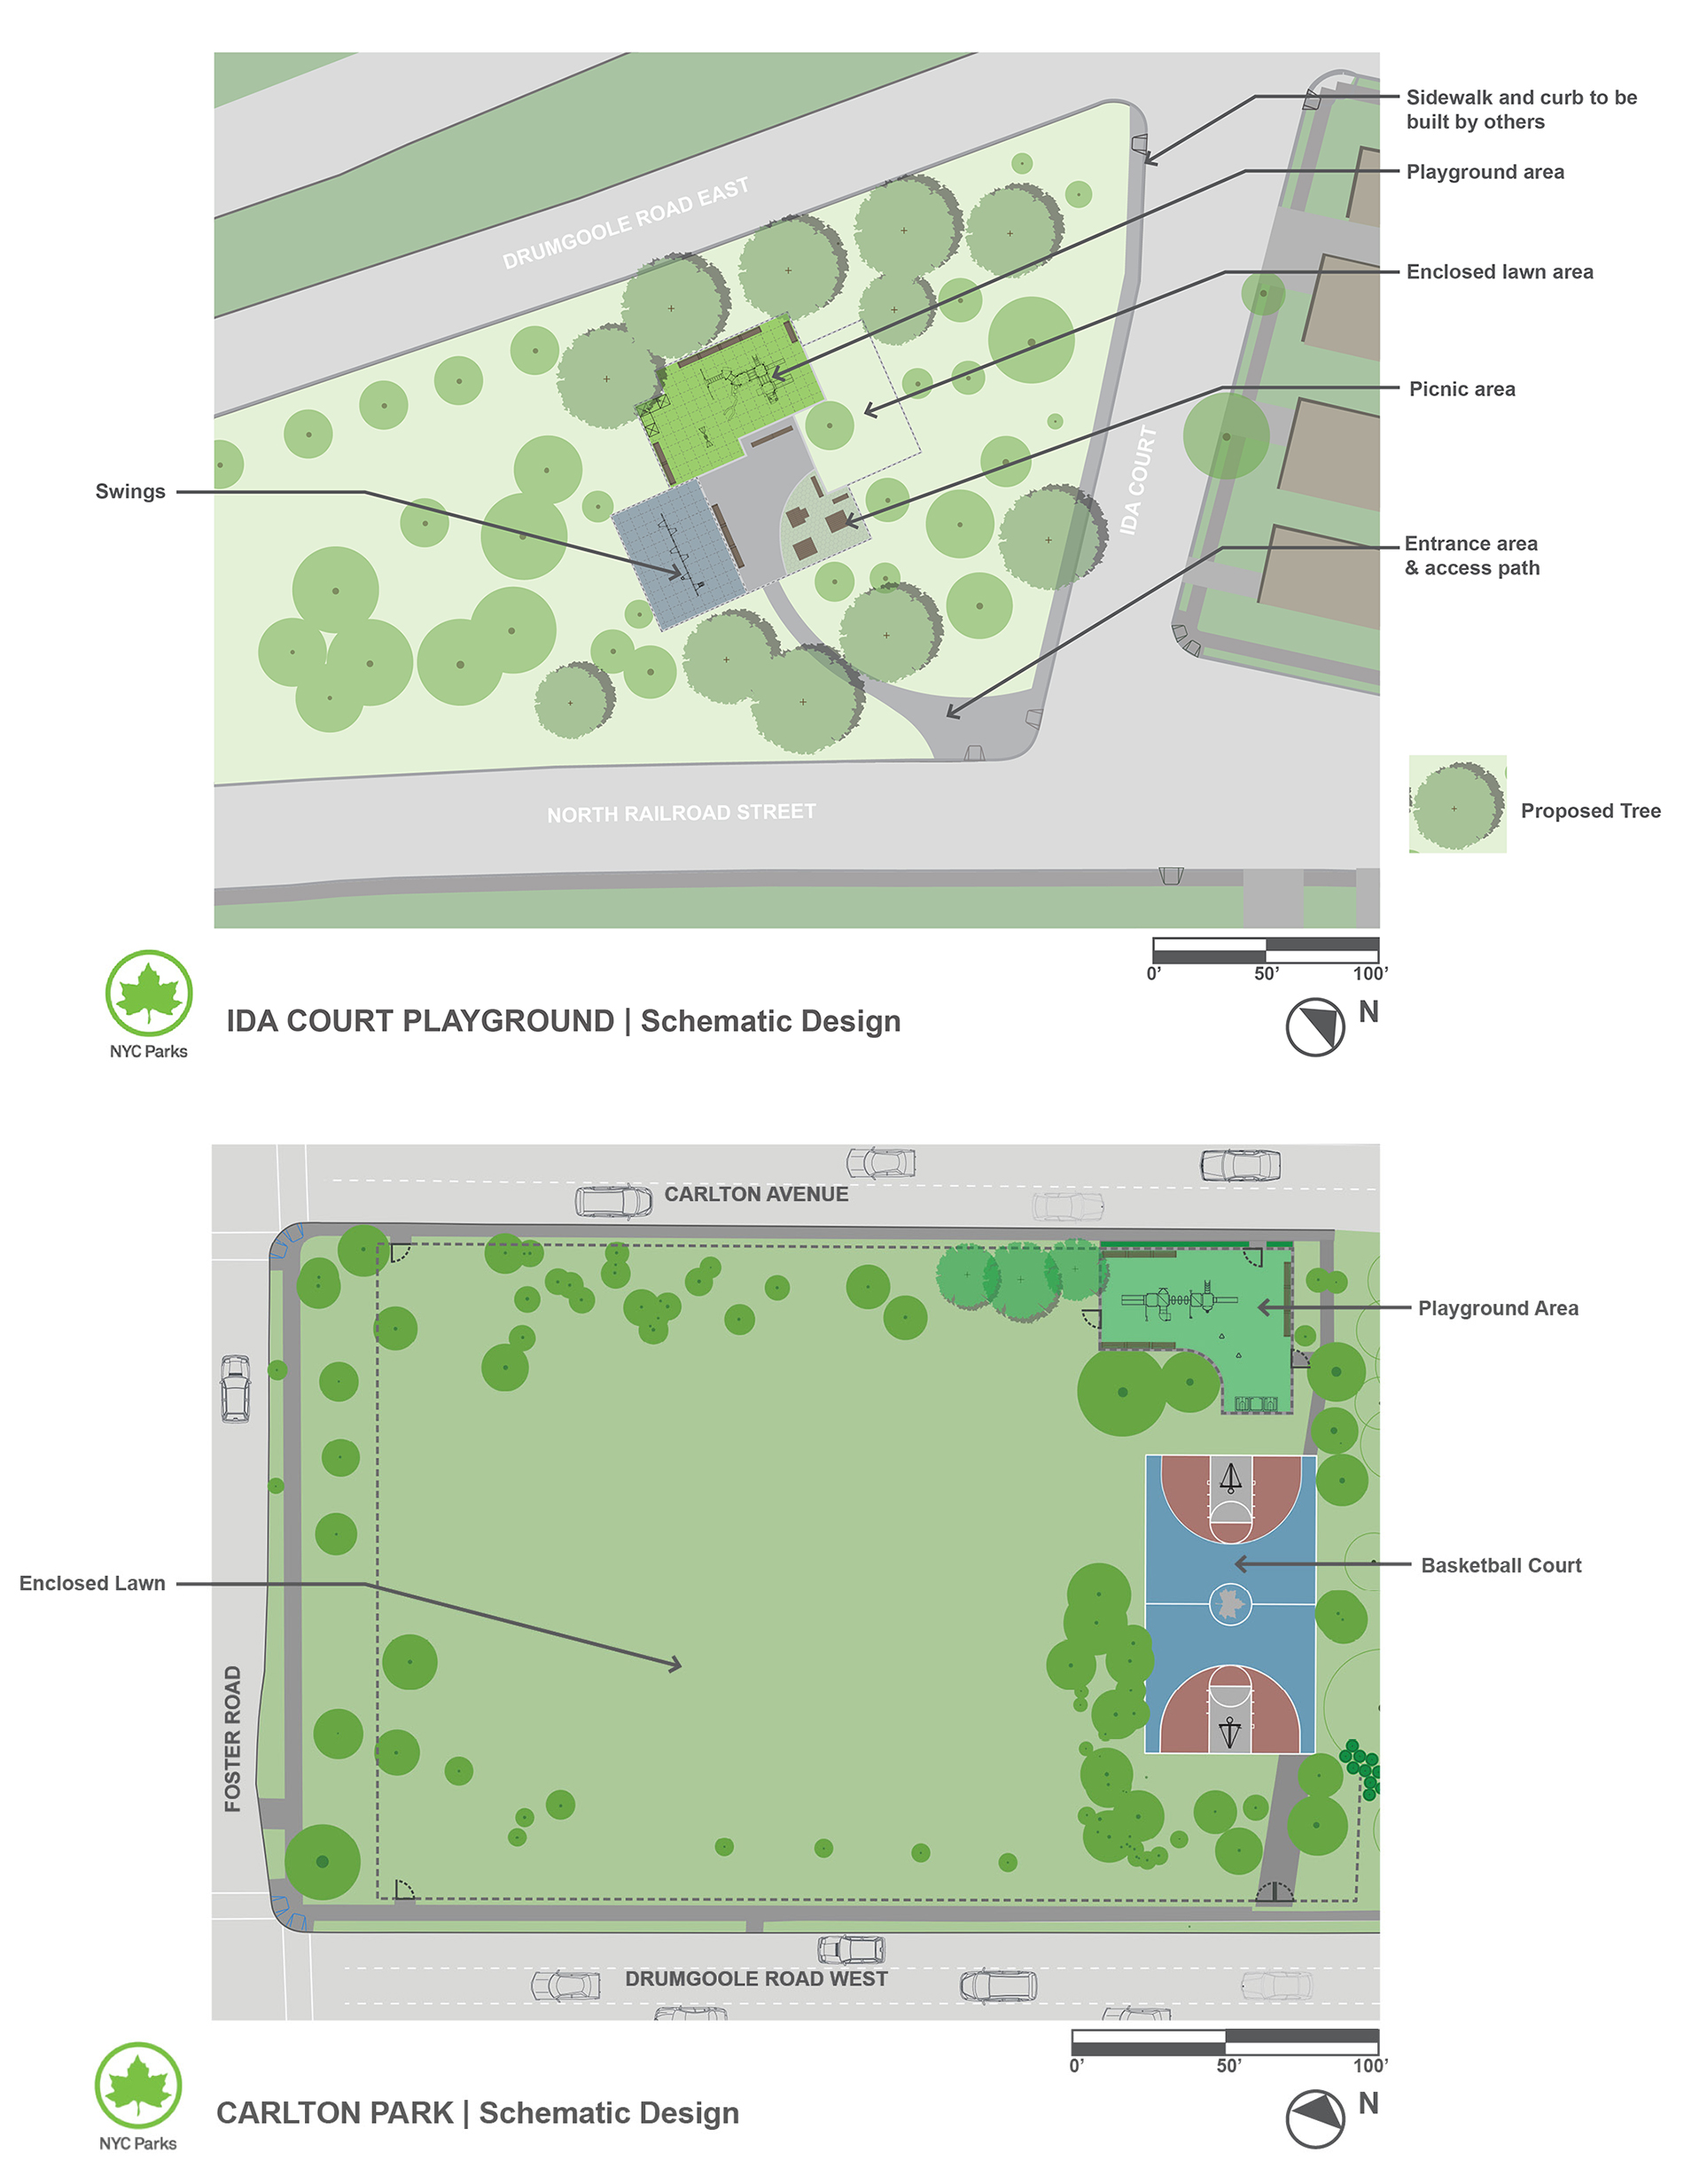 Design of Carlton Park Landscape and Ida Court Playground Reconstruction